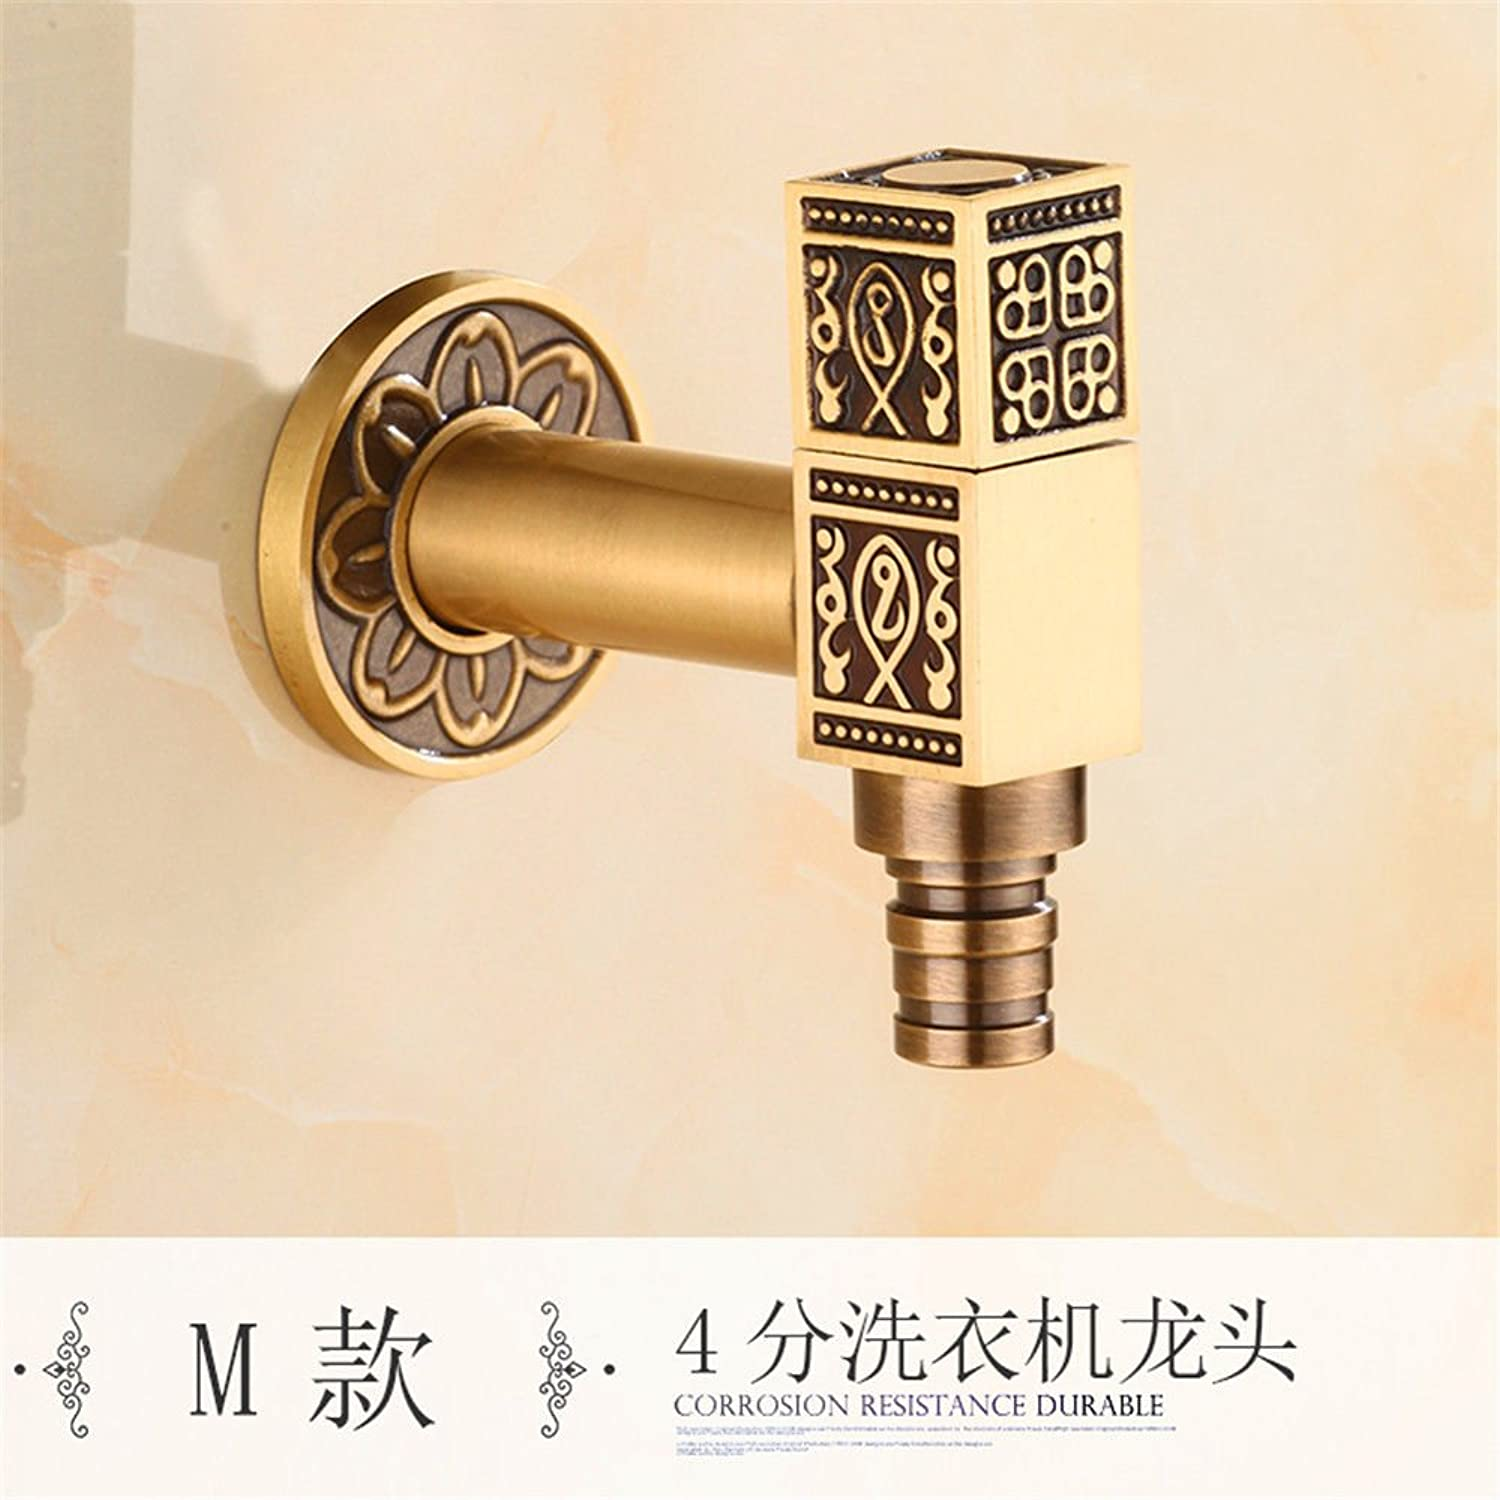 Bijjaladeva Antique Kitchen Sink Mixer Tap Tap Home to Bend Single Cold Water Faucet Kitchen Sink Dish Washing Basin Faucet Cold Water 000 to redate Single Hole Faucet D1